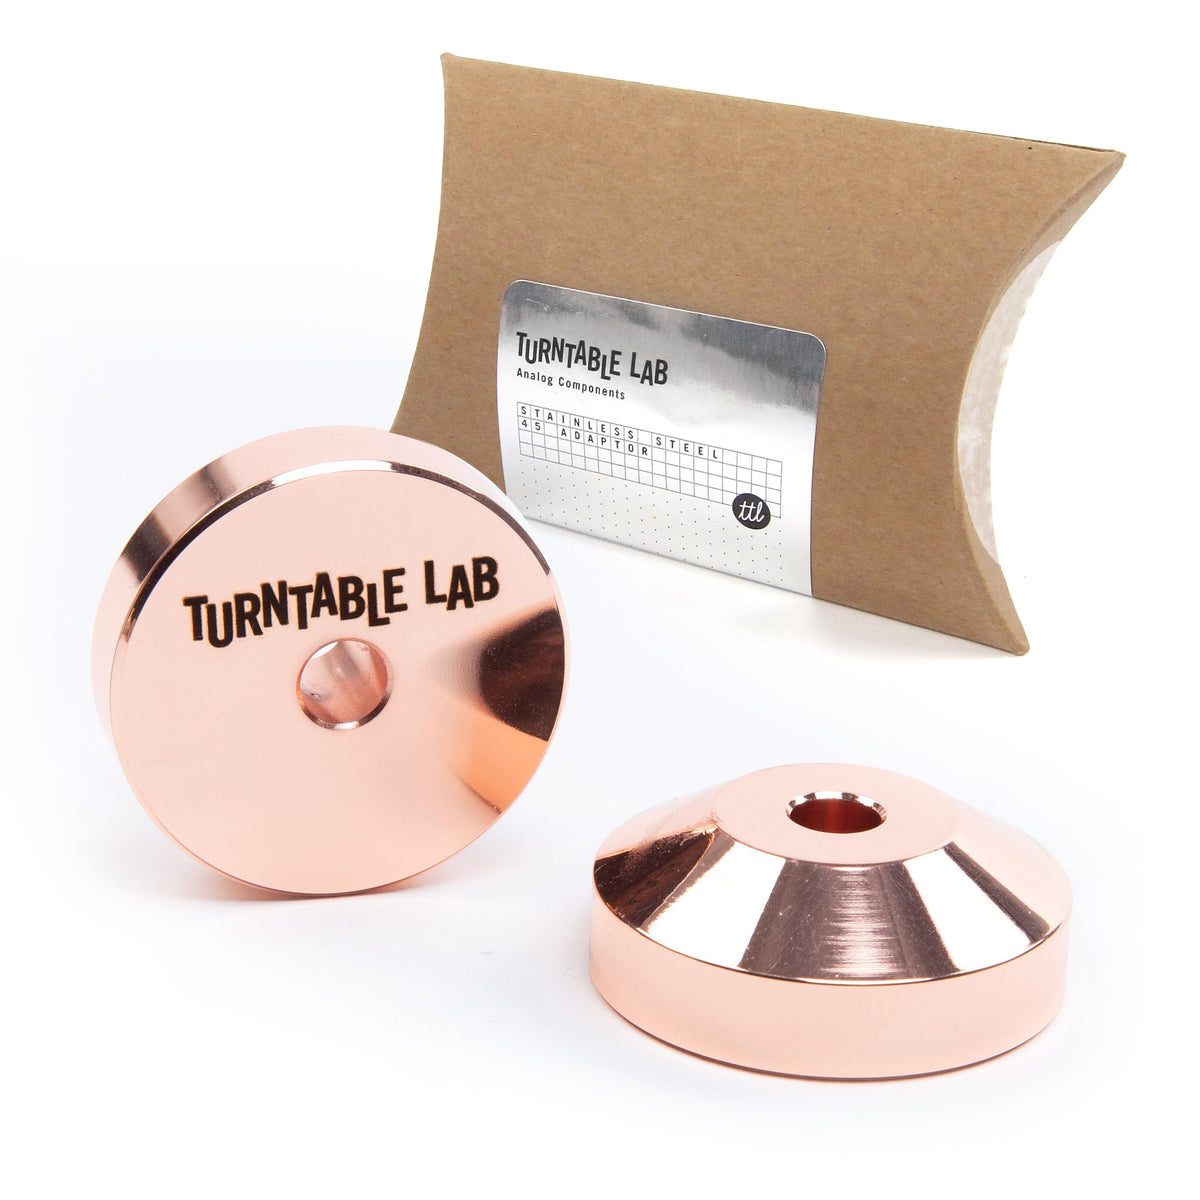 "Turntable Lab: Stainless Steel 45 Record Adaptor for 7"" Vinyl - Copper"